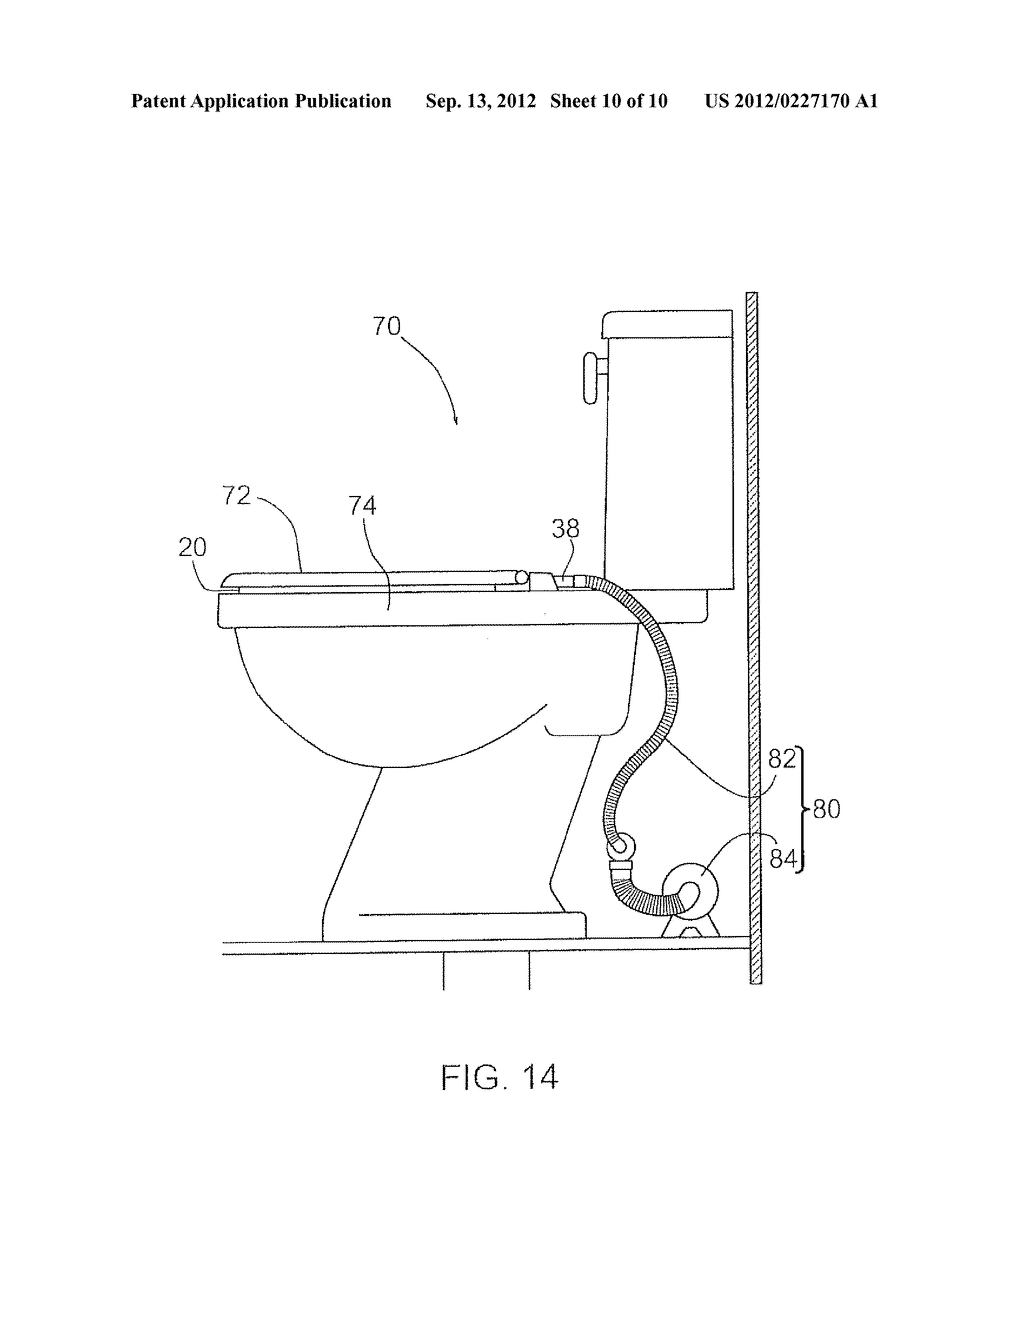 medium resolution of venting attachment for use with a toilet diagram schematic and